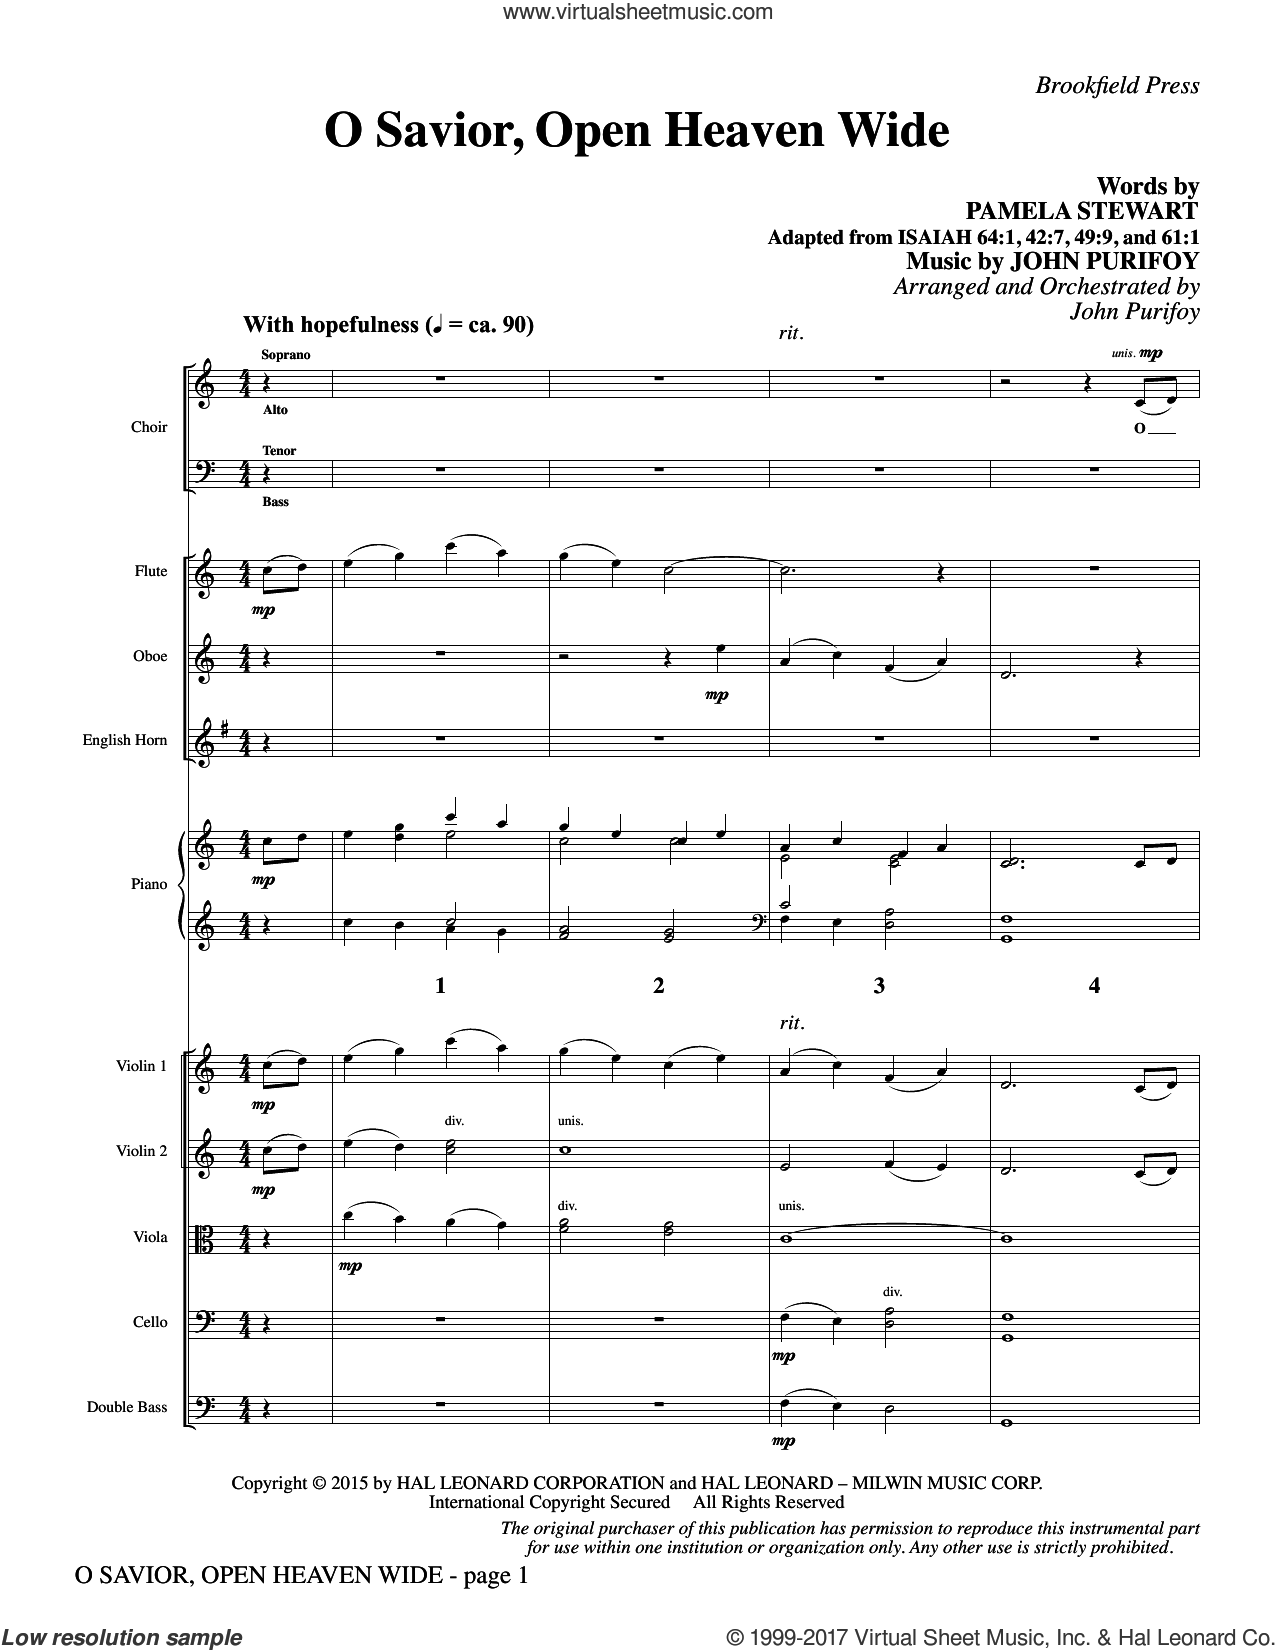 O Savior, Open Heaven Wide (COMPLETE) sheet music for orchestra/band by John Purifoy and Pamela Stewart, intermediate skill level